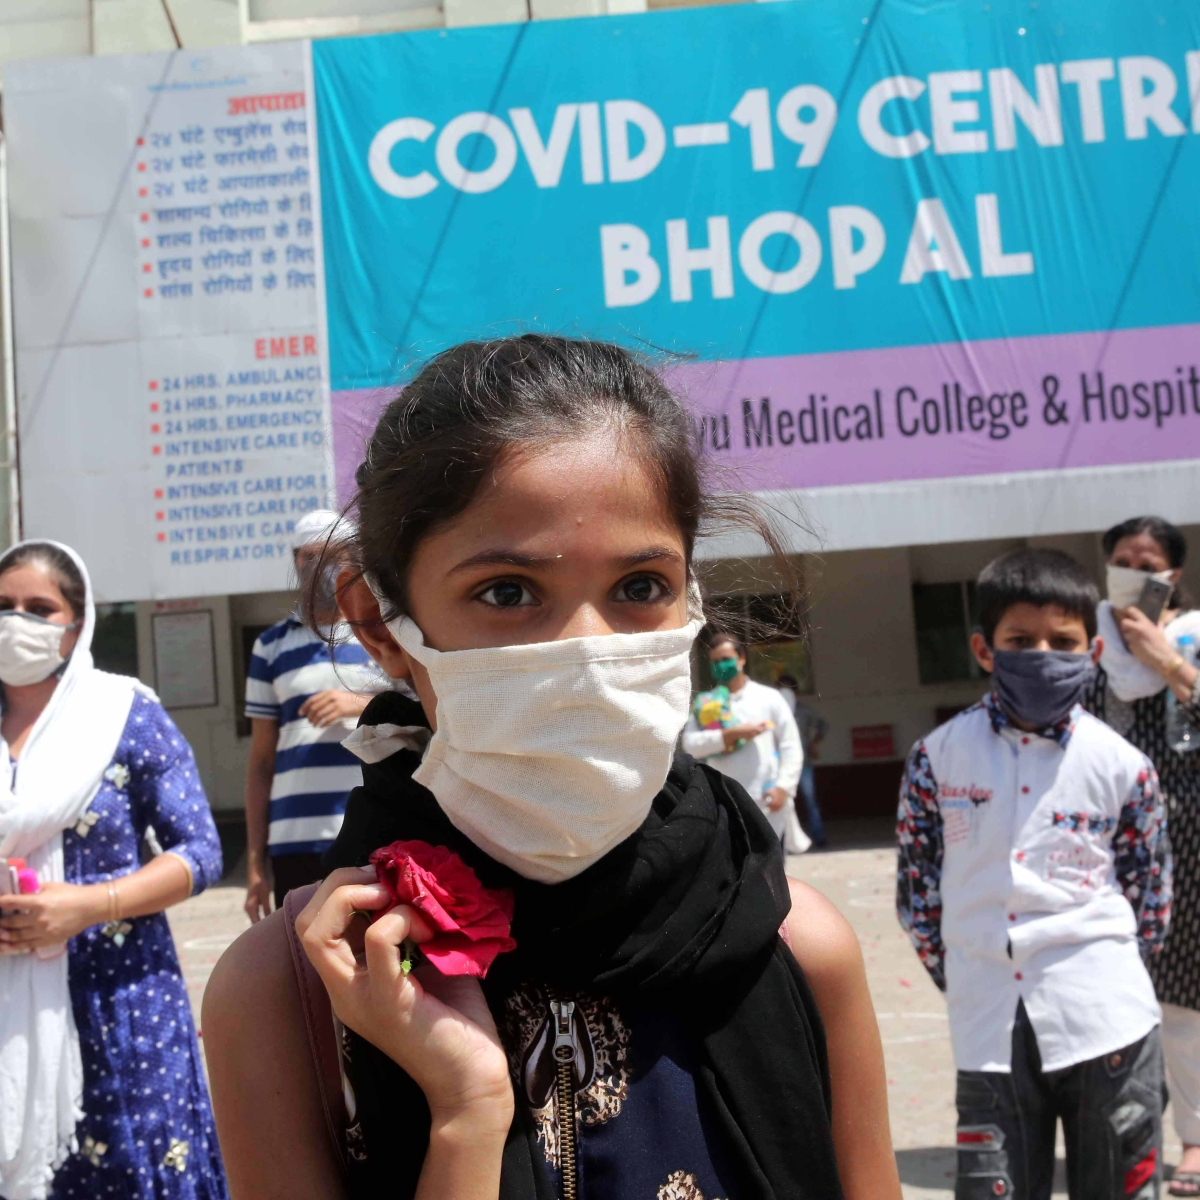 Bhopal: Five ministerial panels to be set up to make plans for Covid-19